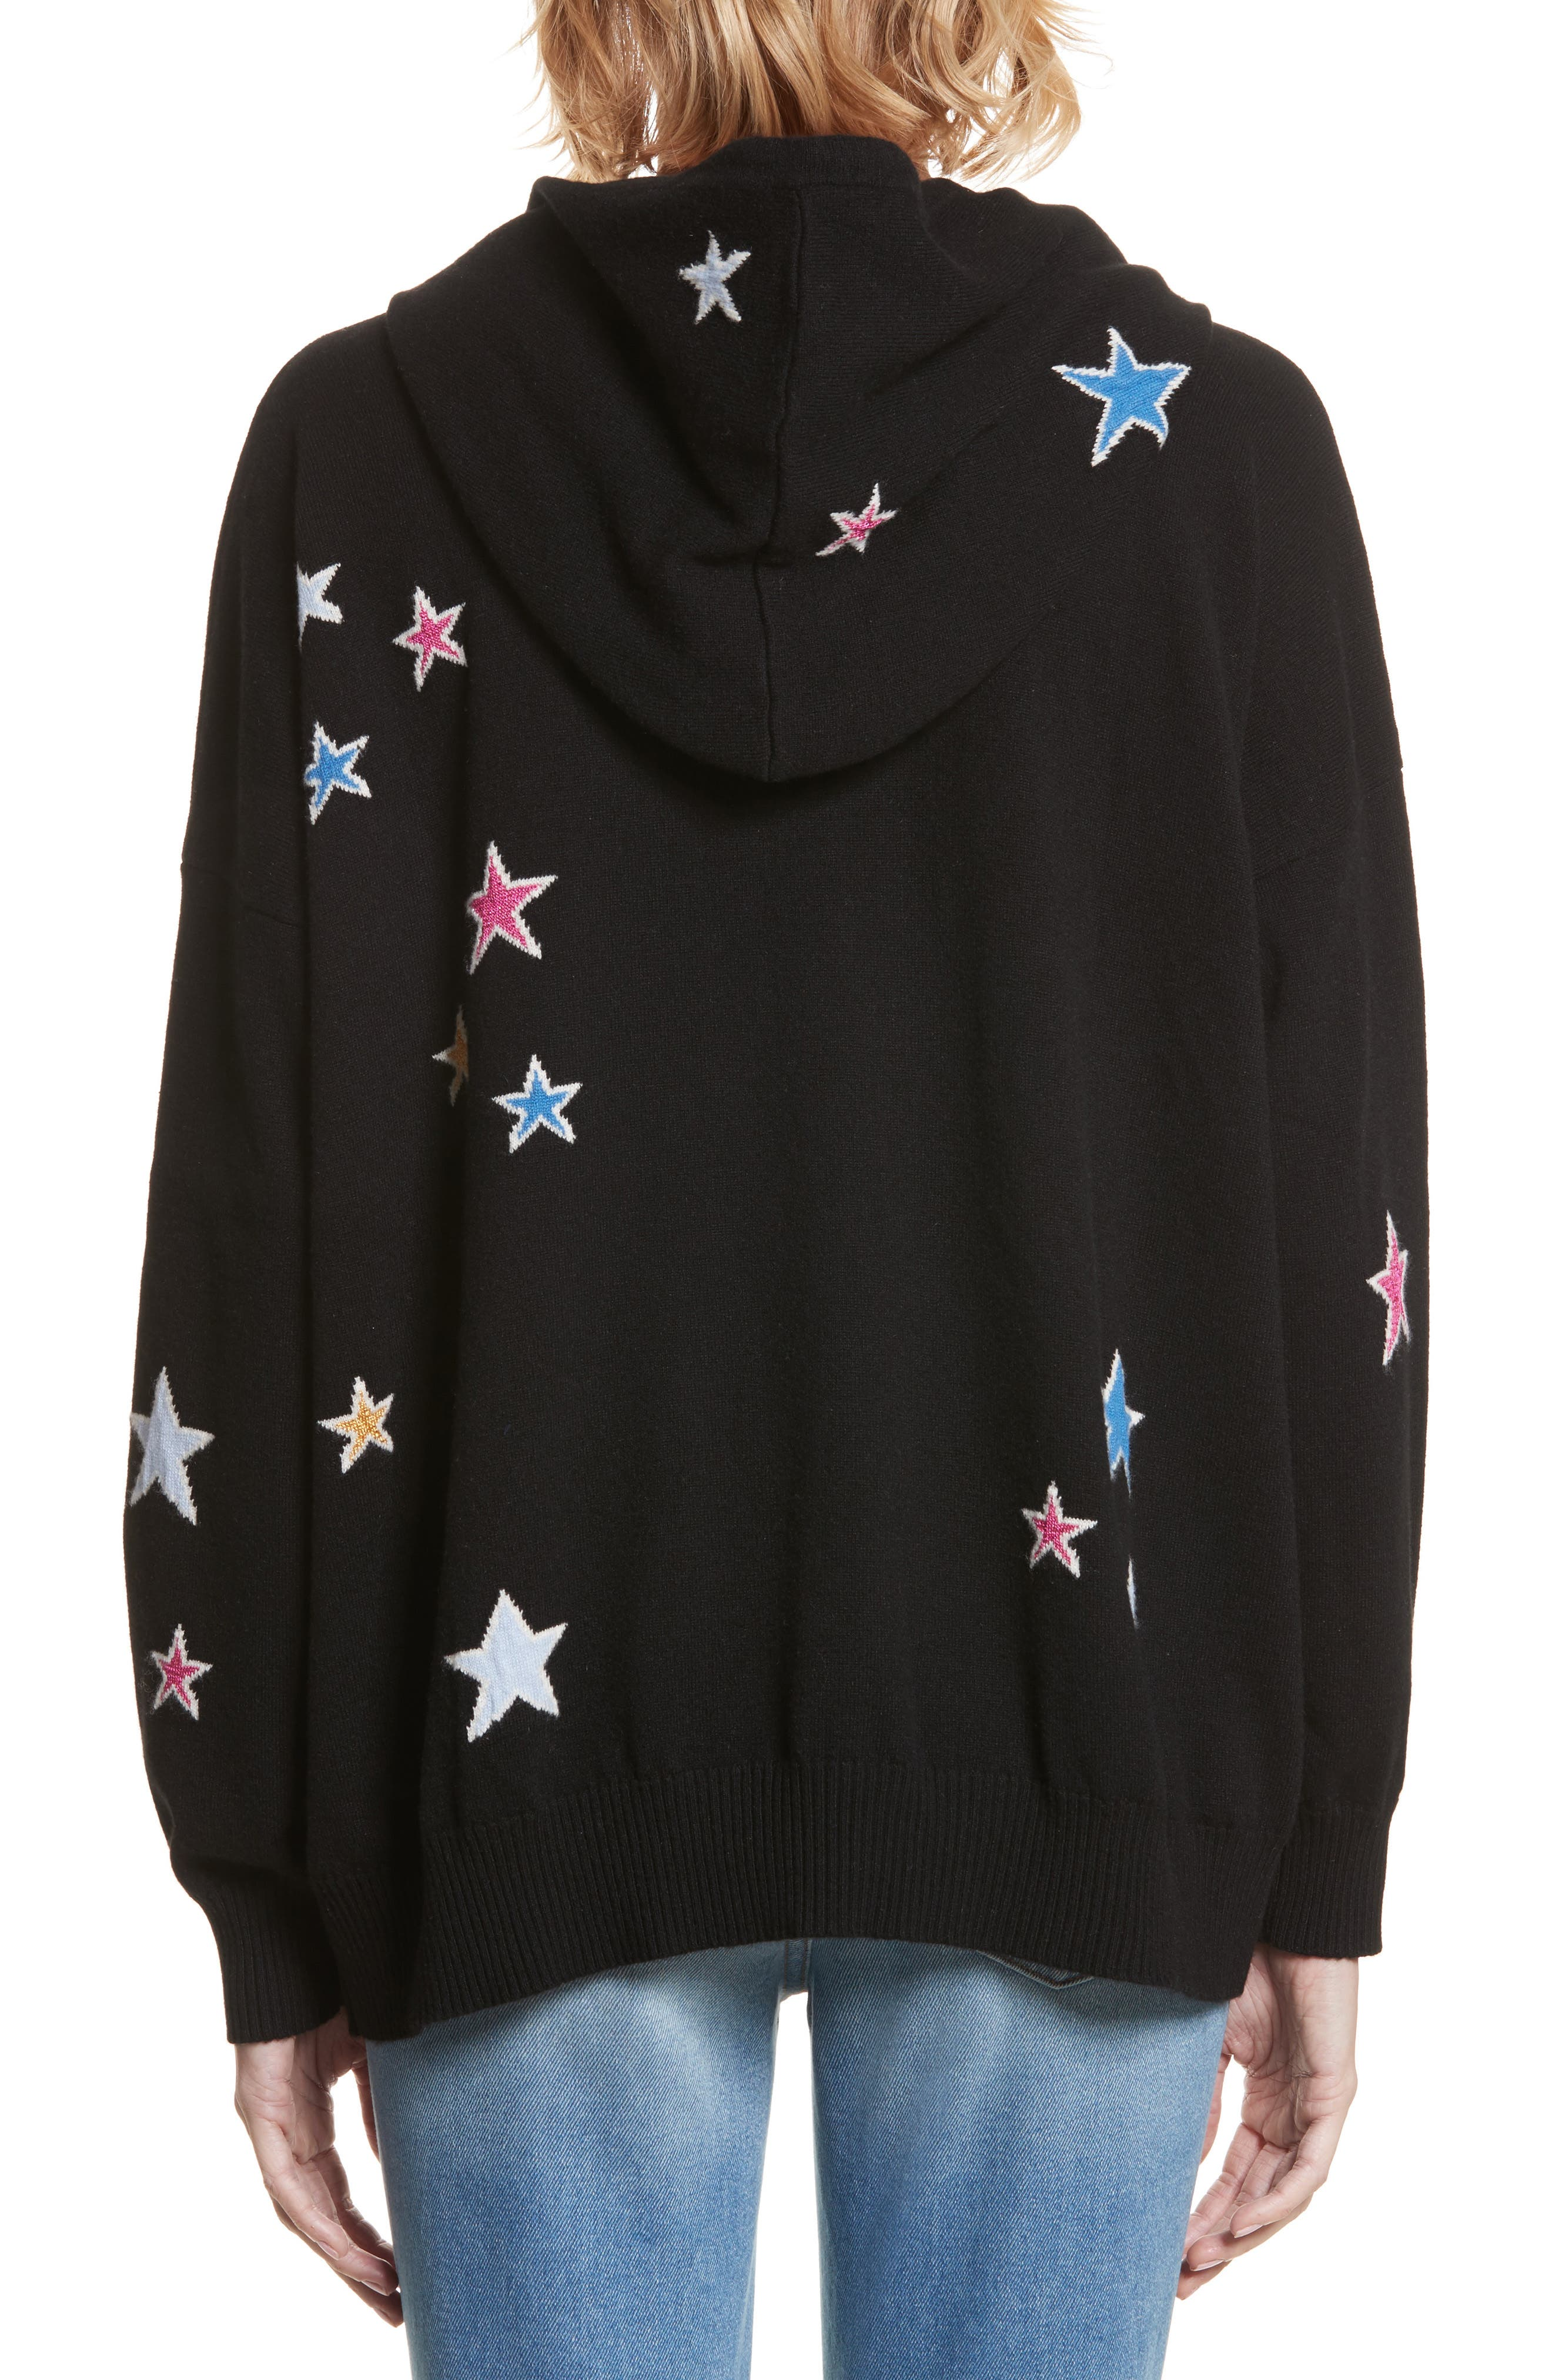 CHINTI & PARKER Acid Star Knit Cashmere Hoodie,                             Alternate thumbnail 2, color,                             001